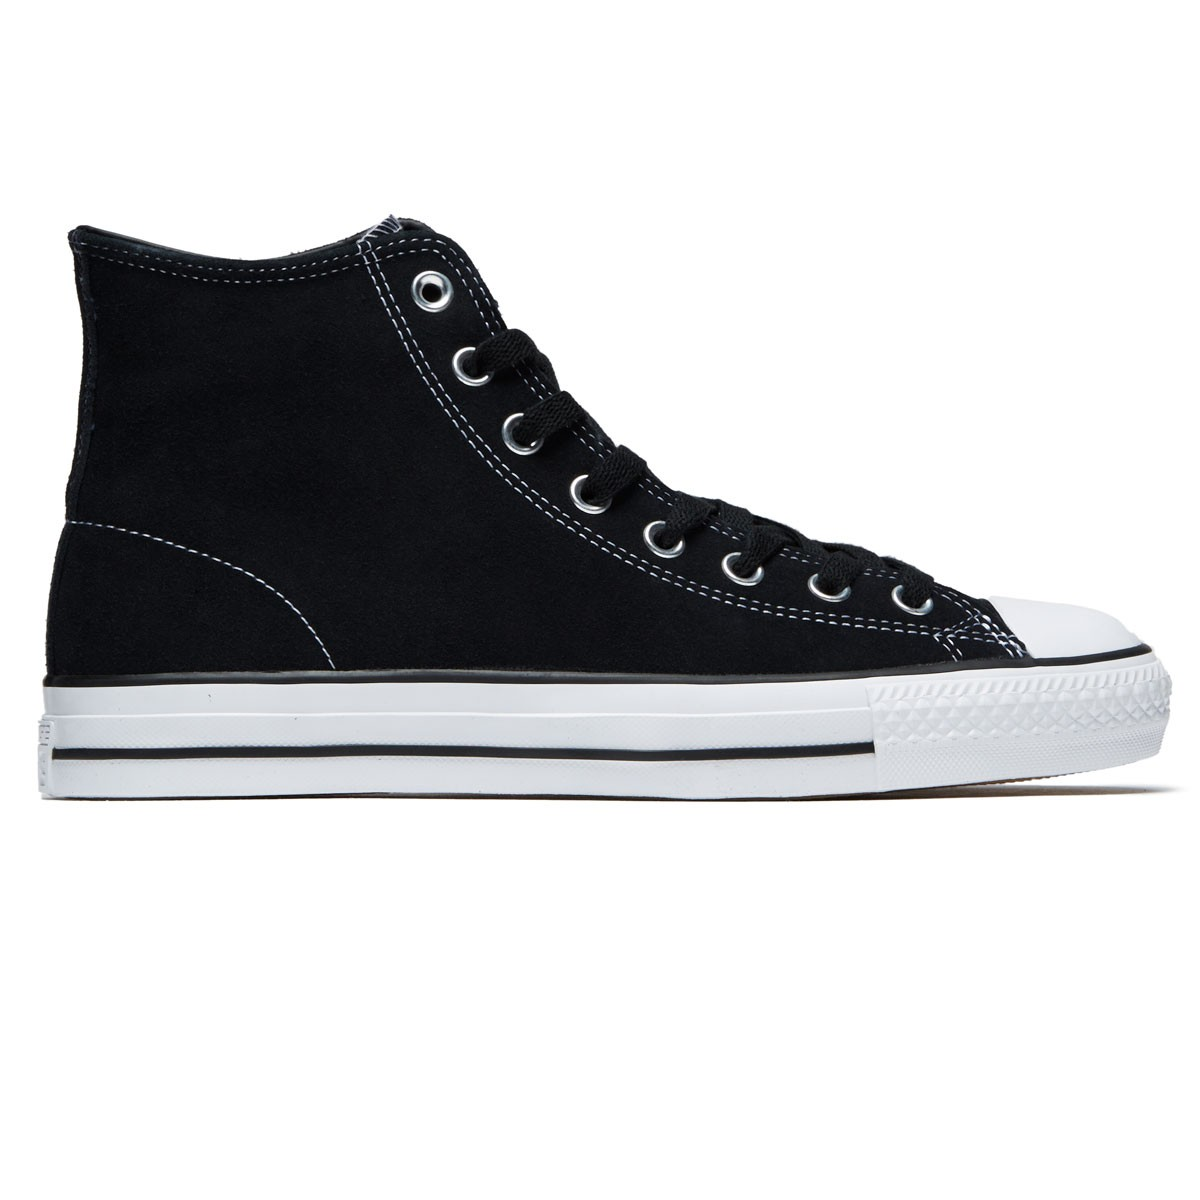 3fd59b59d2c7 Converse Zoom Air CTAS Pro Hi Shoes